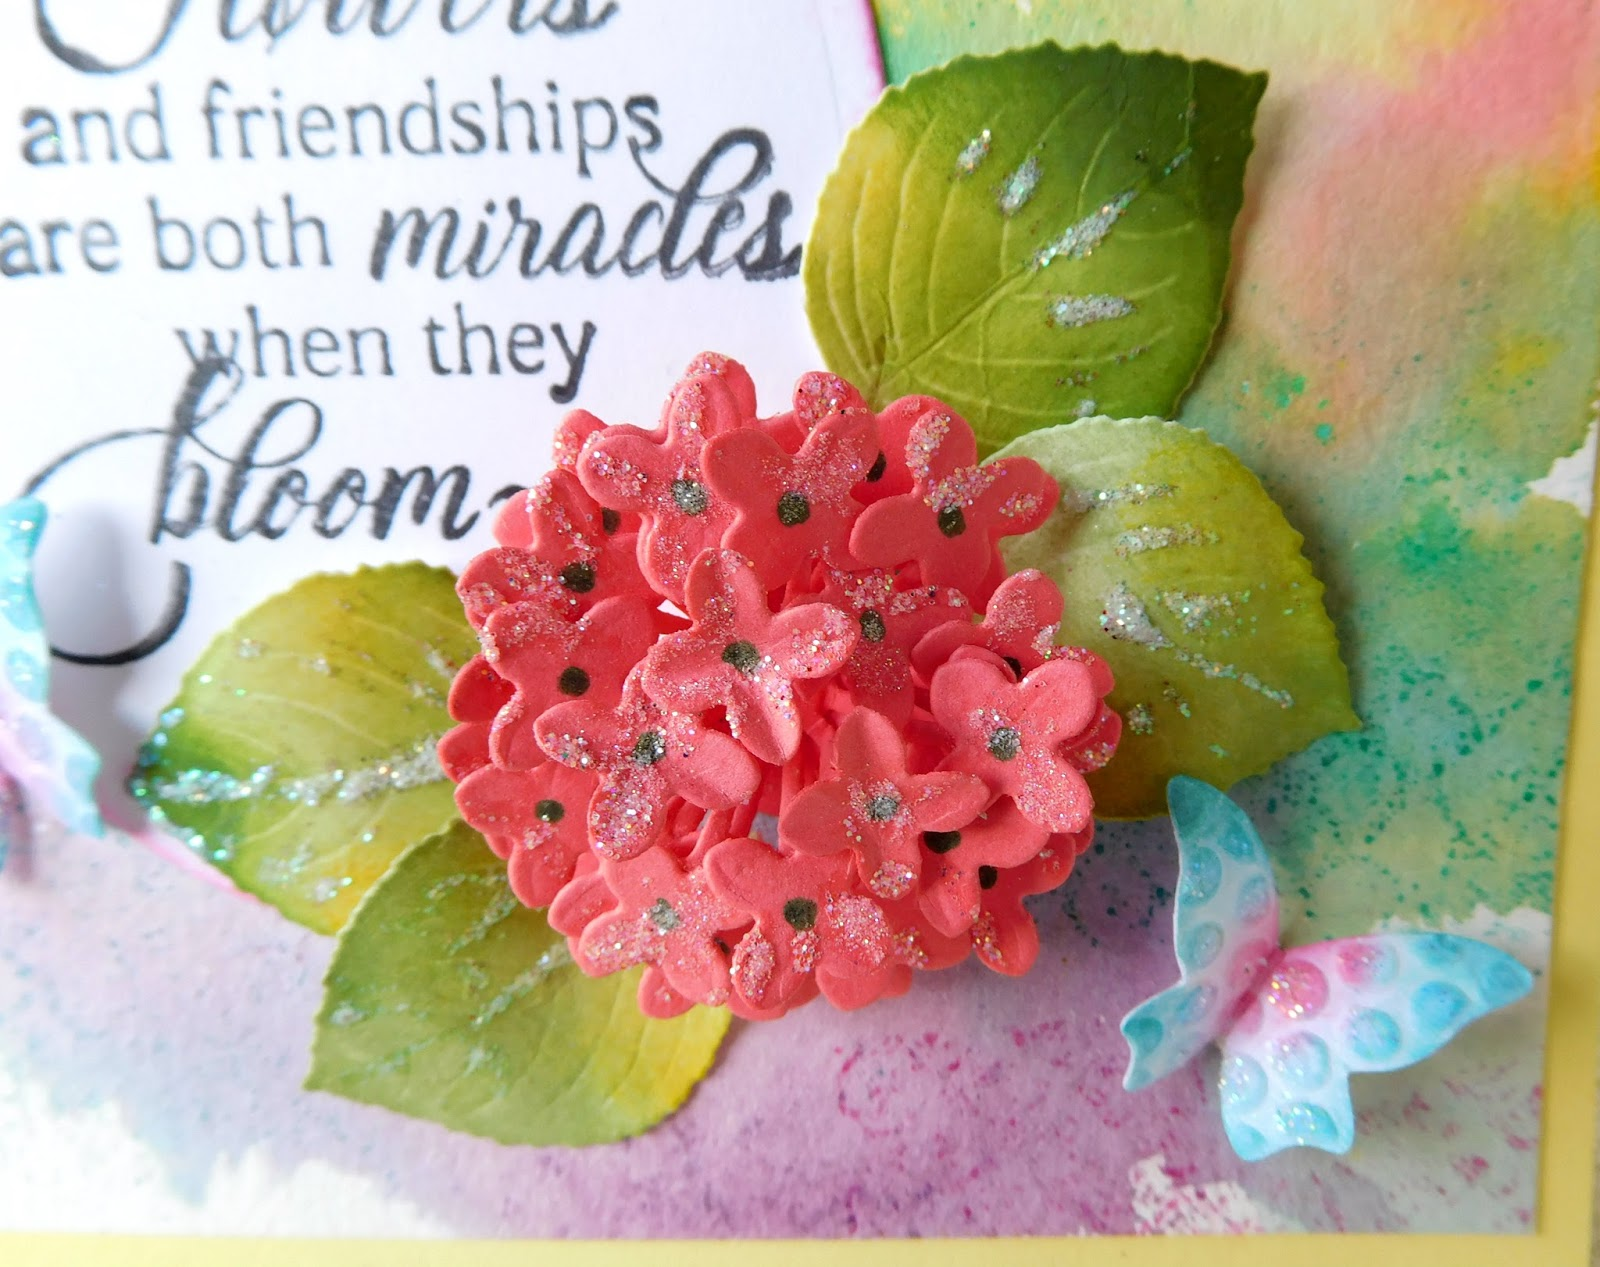 Flowers and friendships by belinda sparkle n sprinkle this beautiful hydrangea flowers was die cut using the spellbinders die sparkle was added to the leaves using the glue pen and sparkling snow glitter izmirmasajfo